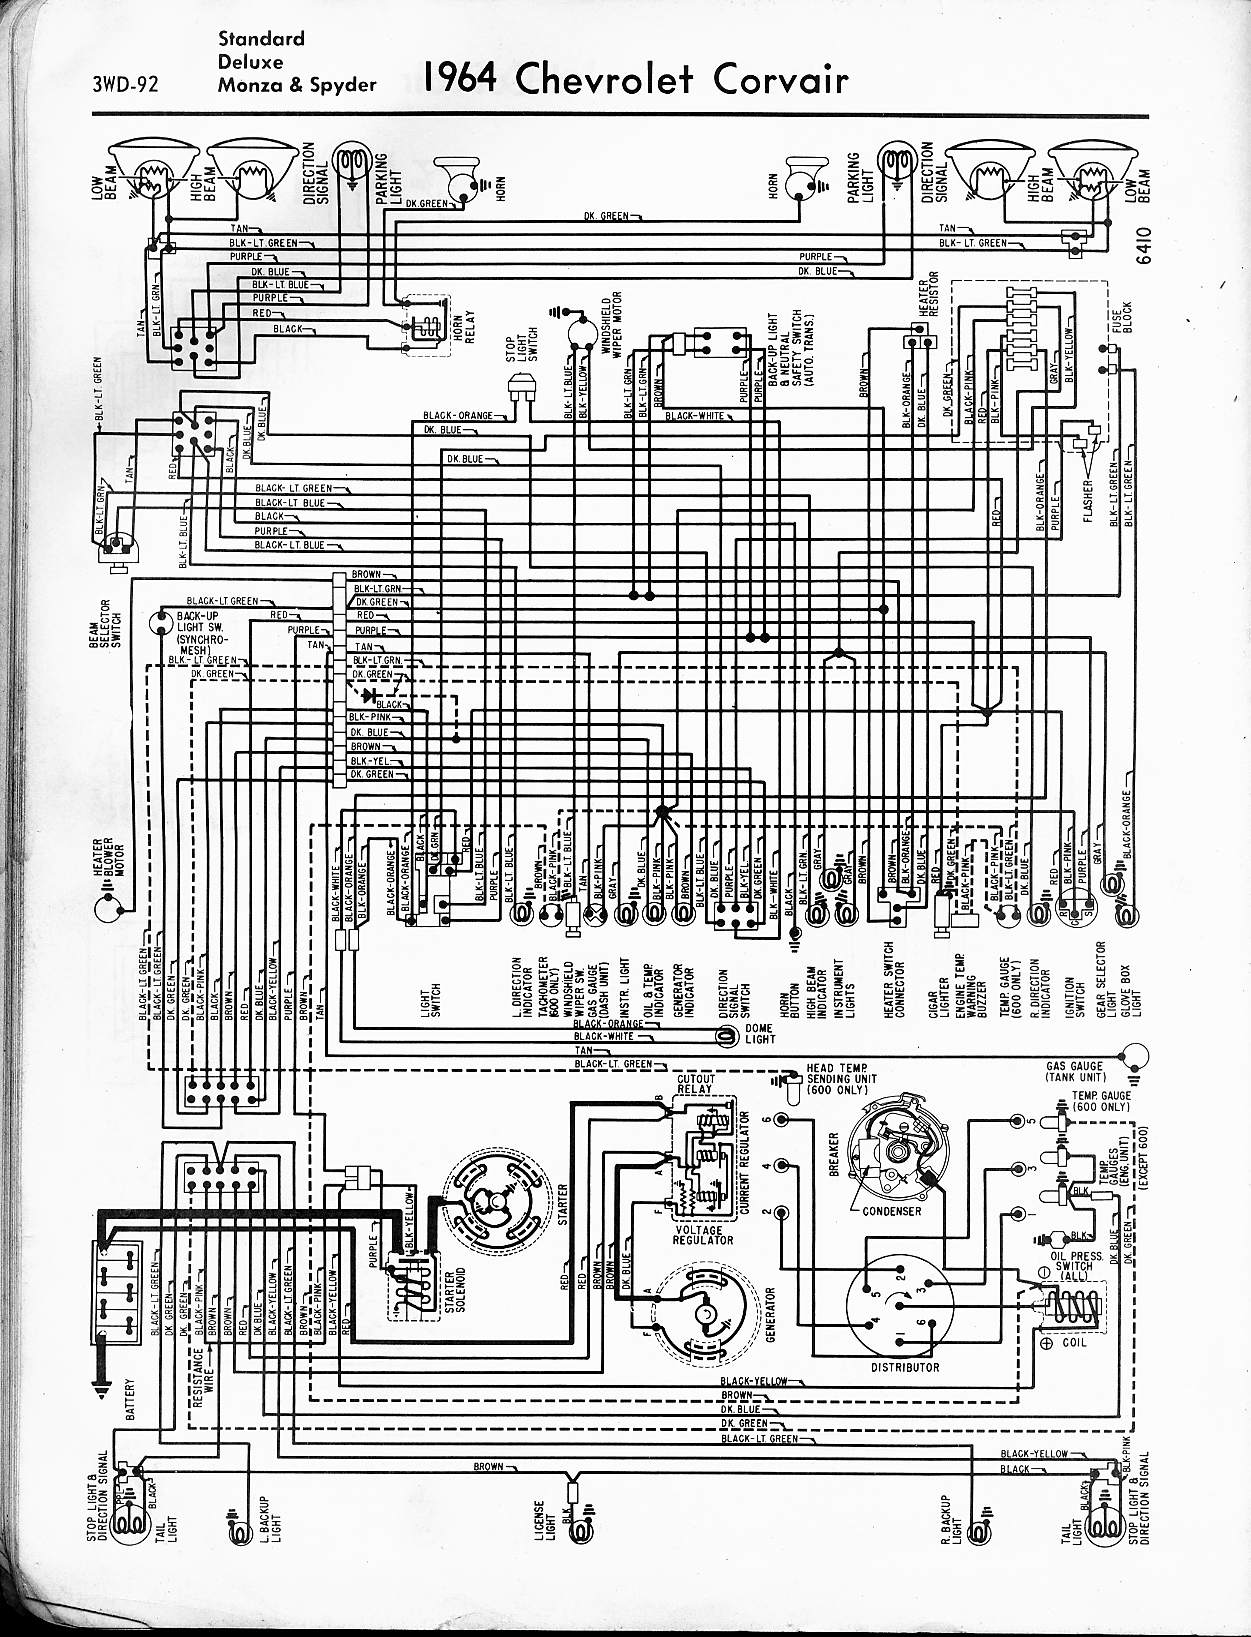 MWireChev64_3WD 092 57 65 chevy wiring diagrams 1964 corvair wiring diagram at love-stories.co